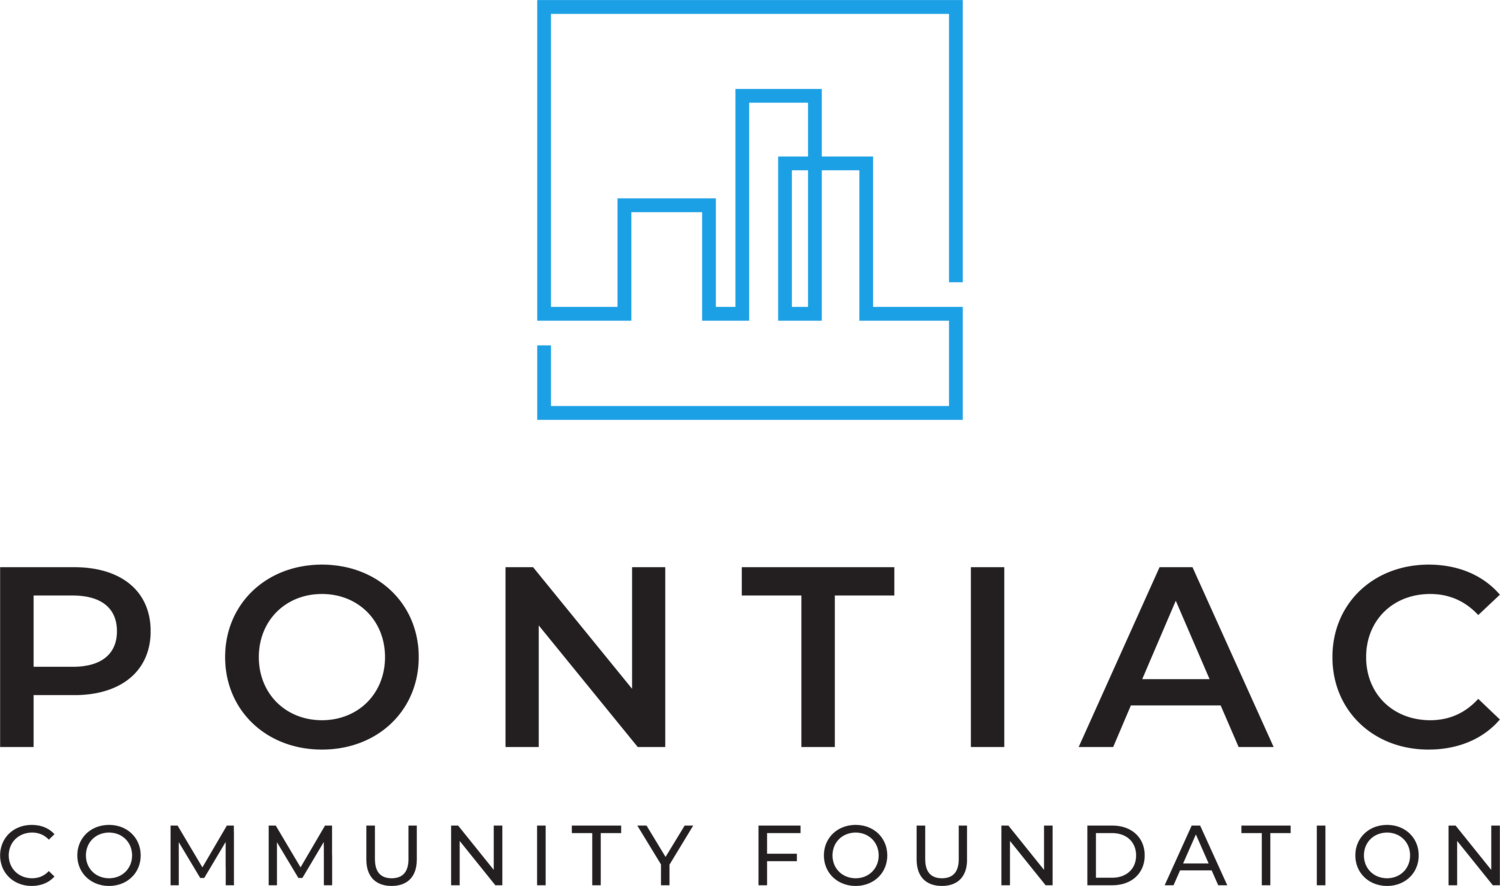 Pontiac Community Foundation